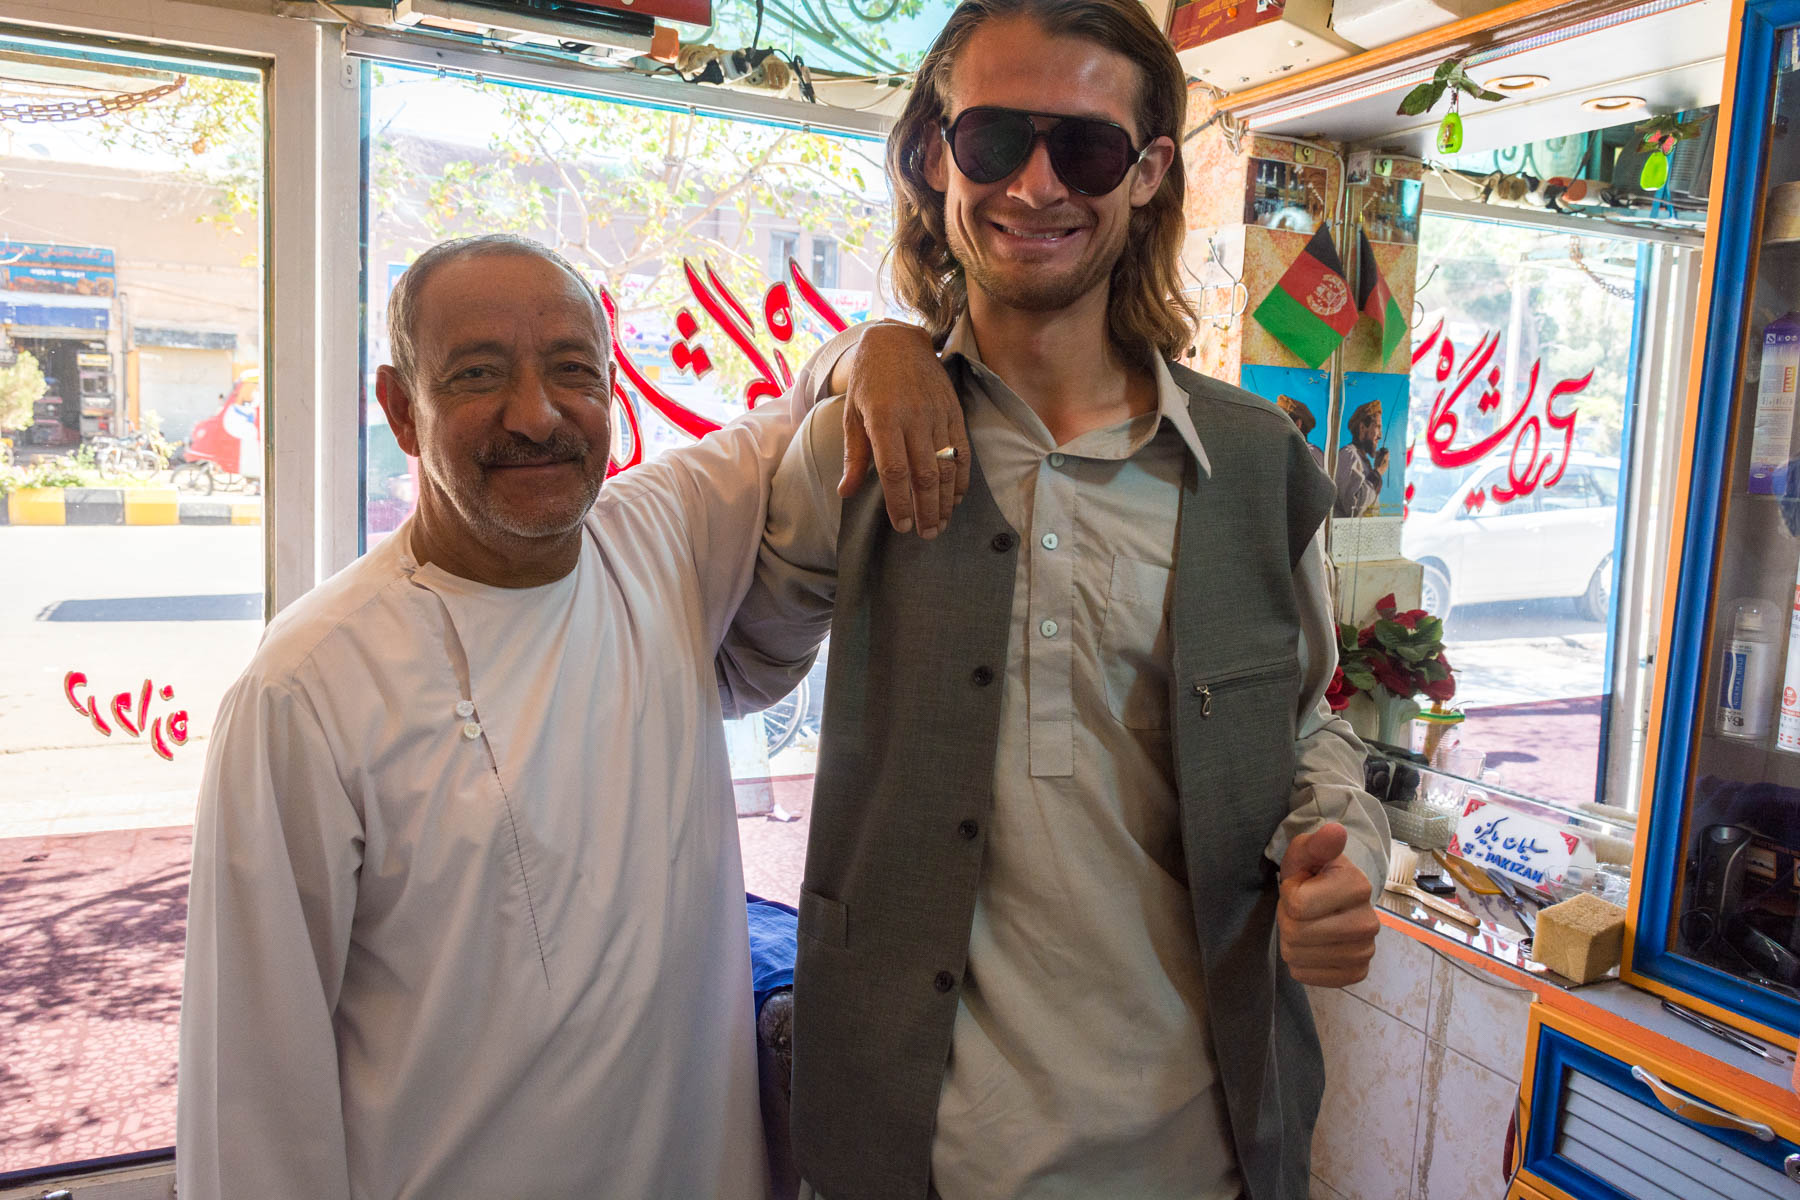 Sebastiaan posing with a friendly barber in Herat, Afghanistan - Lost With Purpose